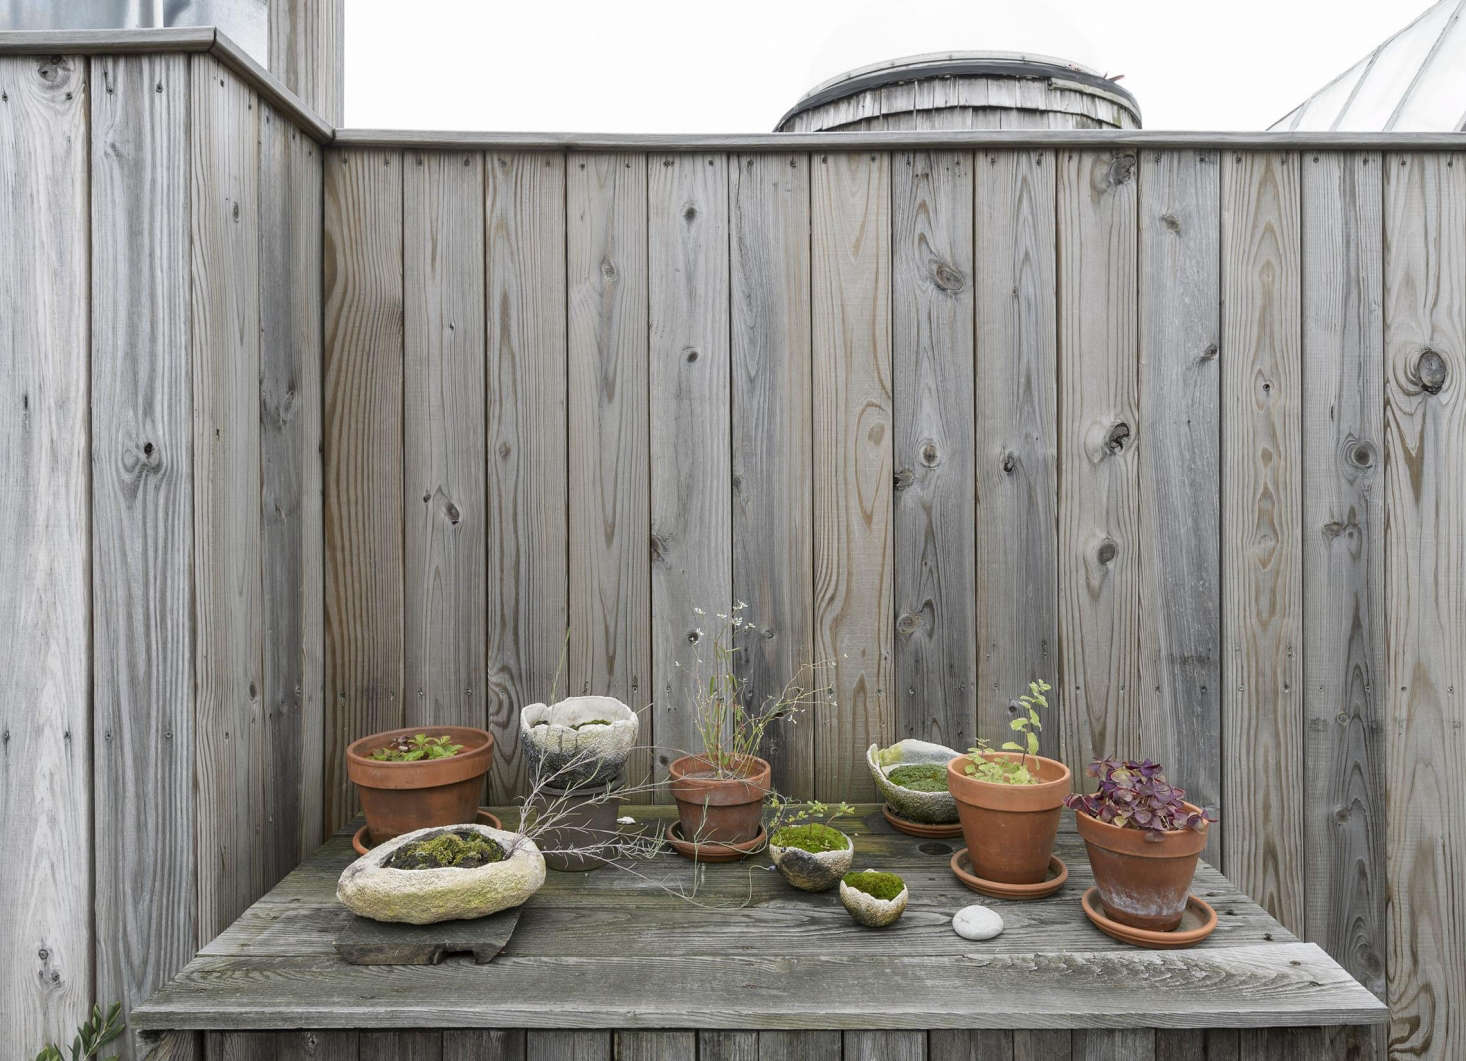 A tabletop of purple basil, twiglike herbs, and moss experiments in a mix of terracotta pots and Genevieve Chevallier Oval Pots.